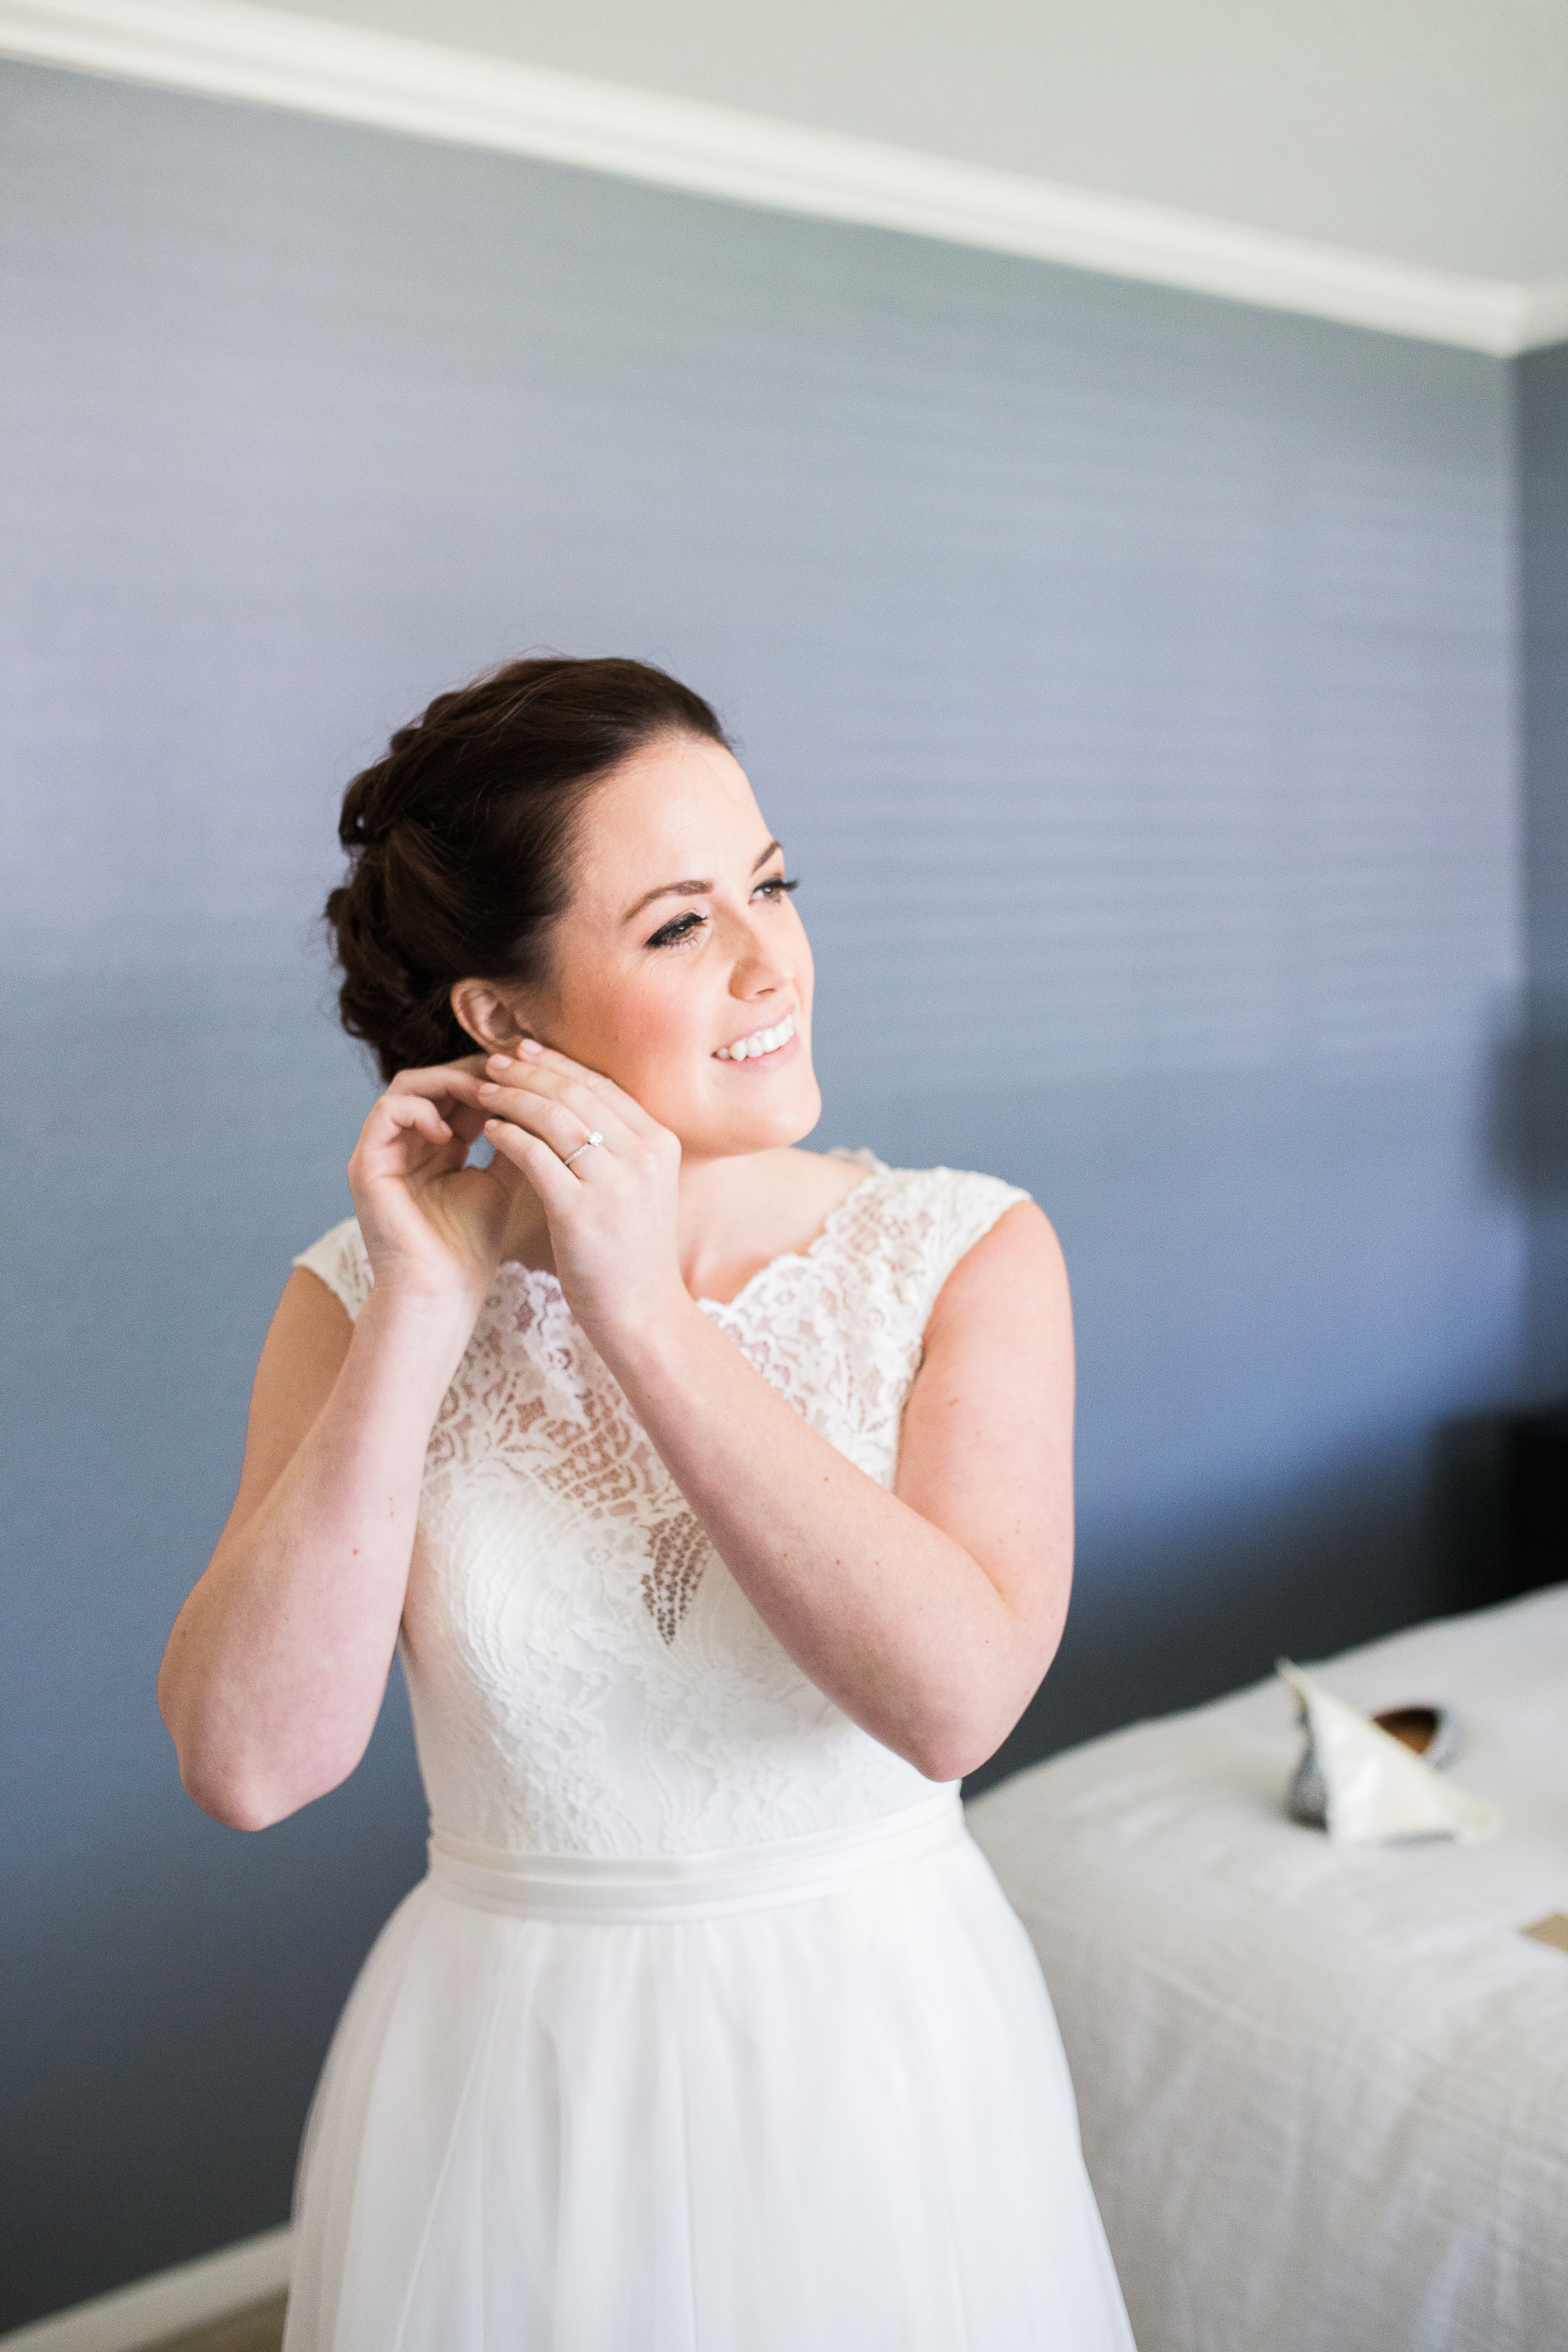 Coohills Wedding Photographer - bride putting on earrings